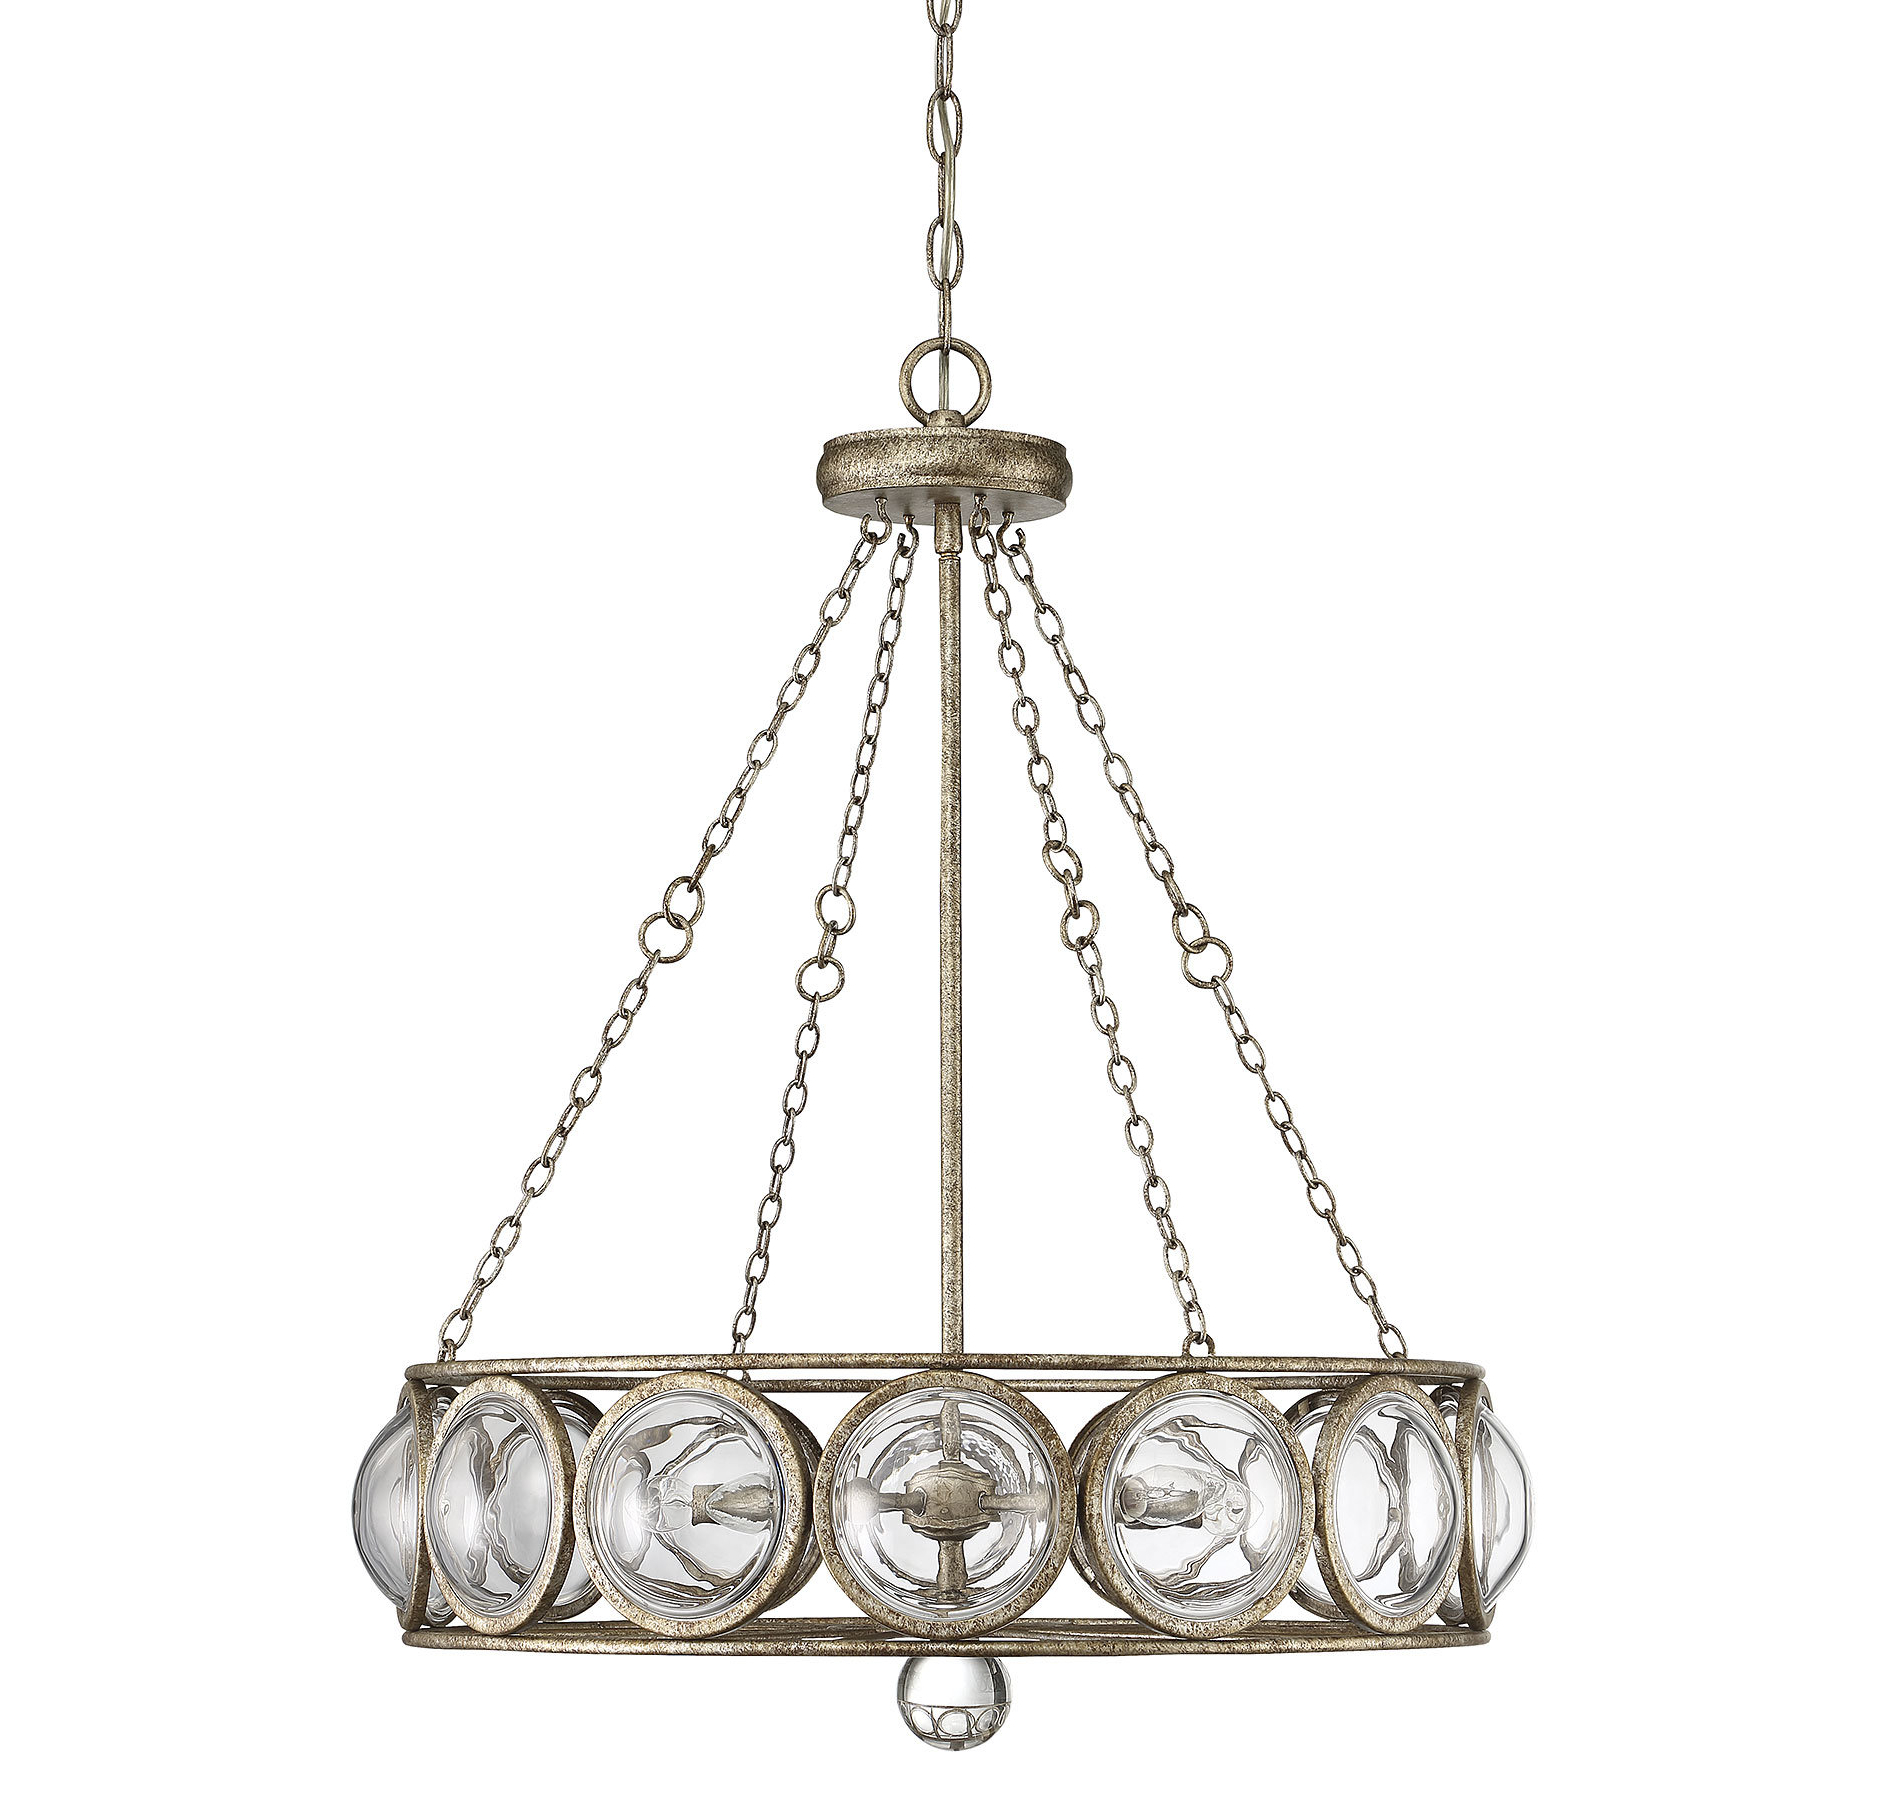 Hermione 5 Light Drum Chandeliers Within Latest Nellie 5 Light Drum Chandelier (View 7 of 20)